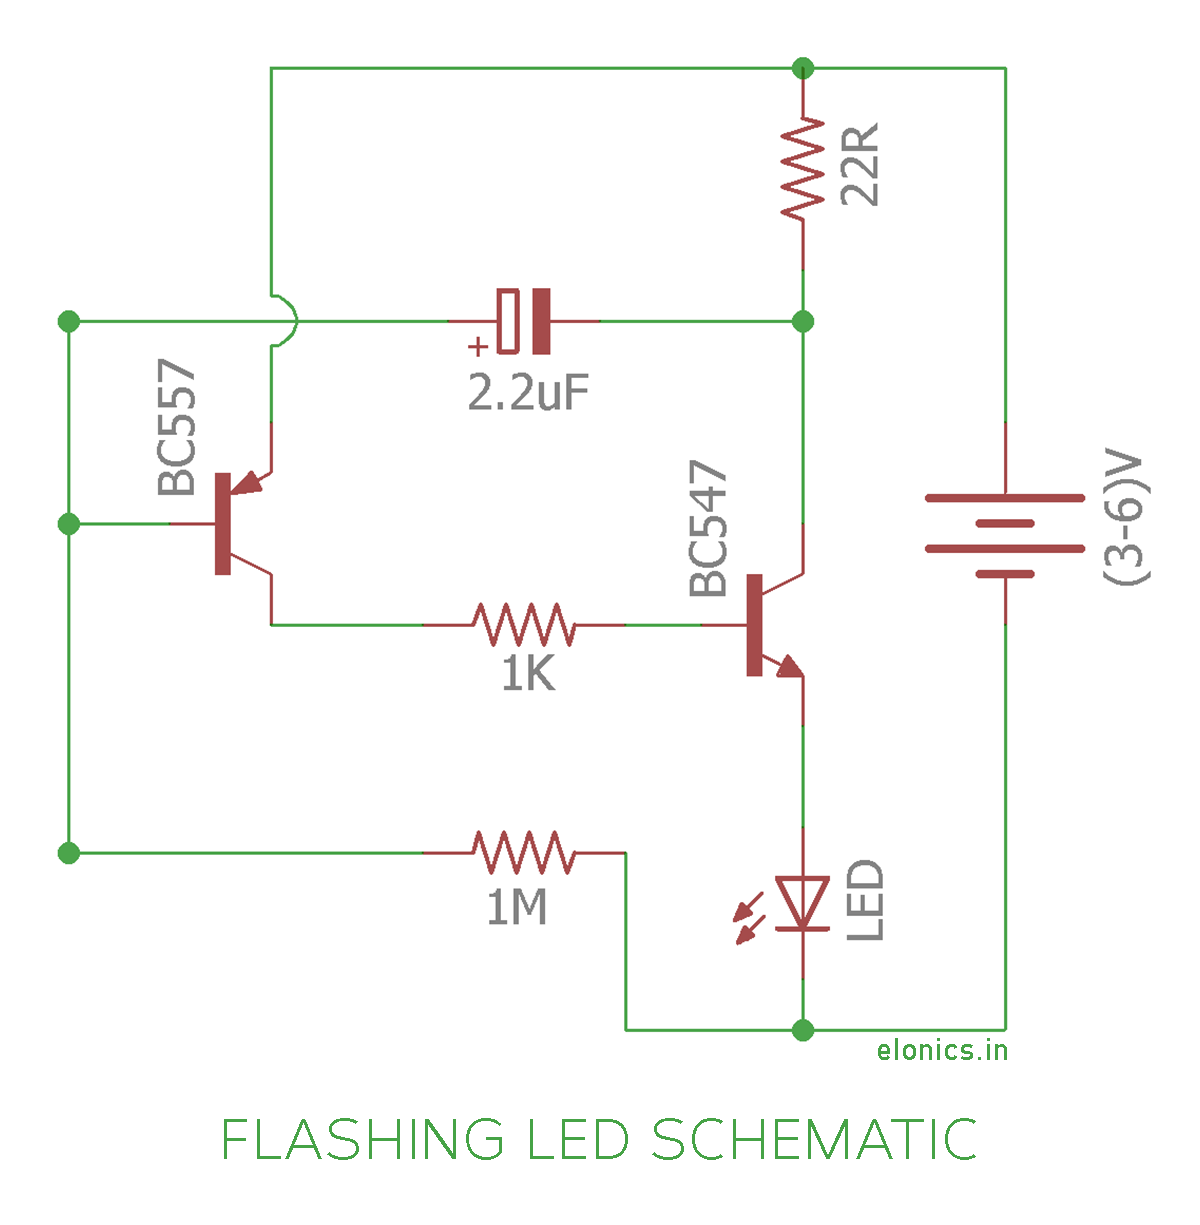 Flashing Blinking Led Circuit Using Transistors Schematic Arduino Ir Sensor Diagram Lm324